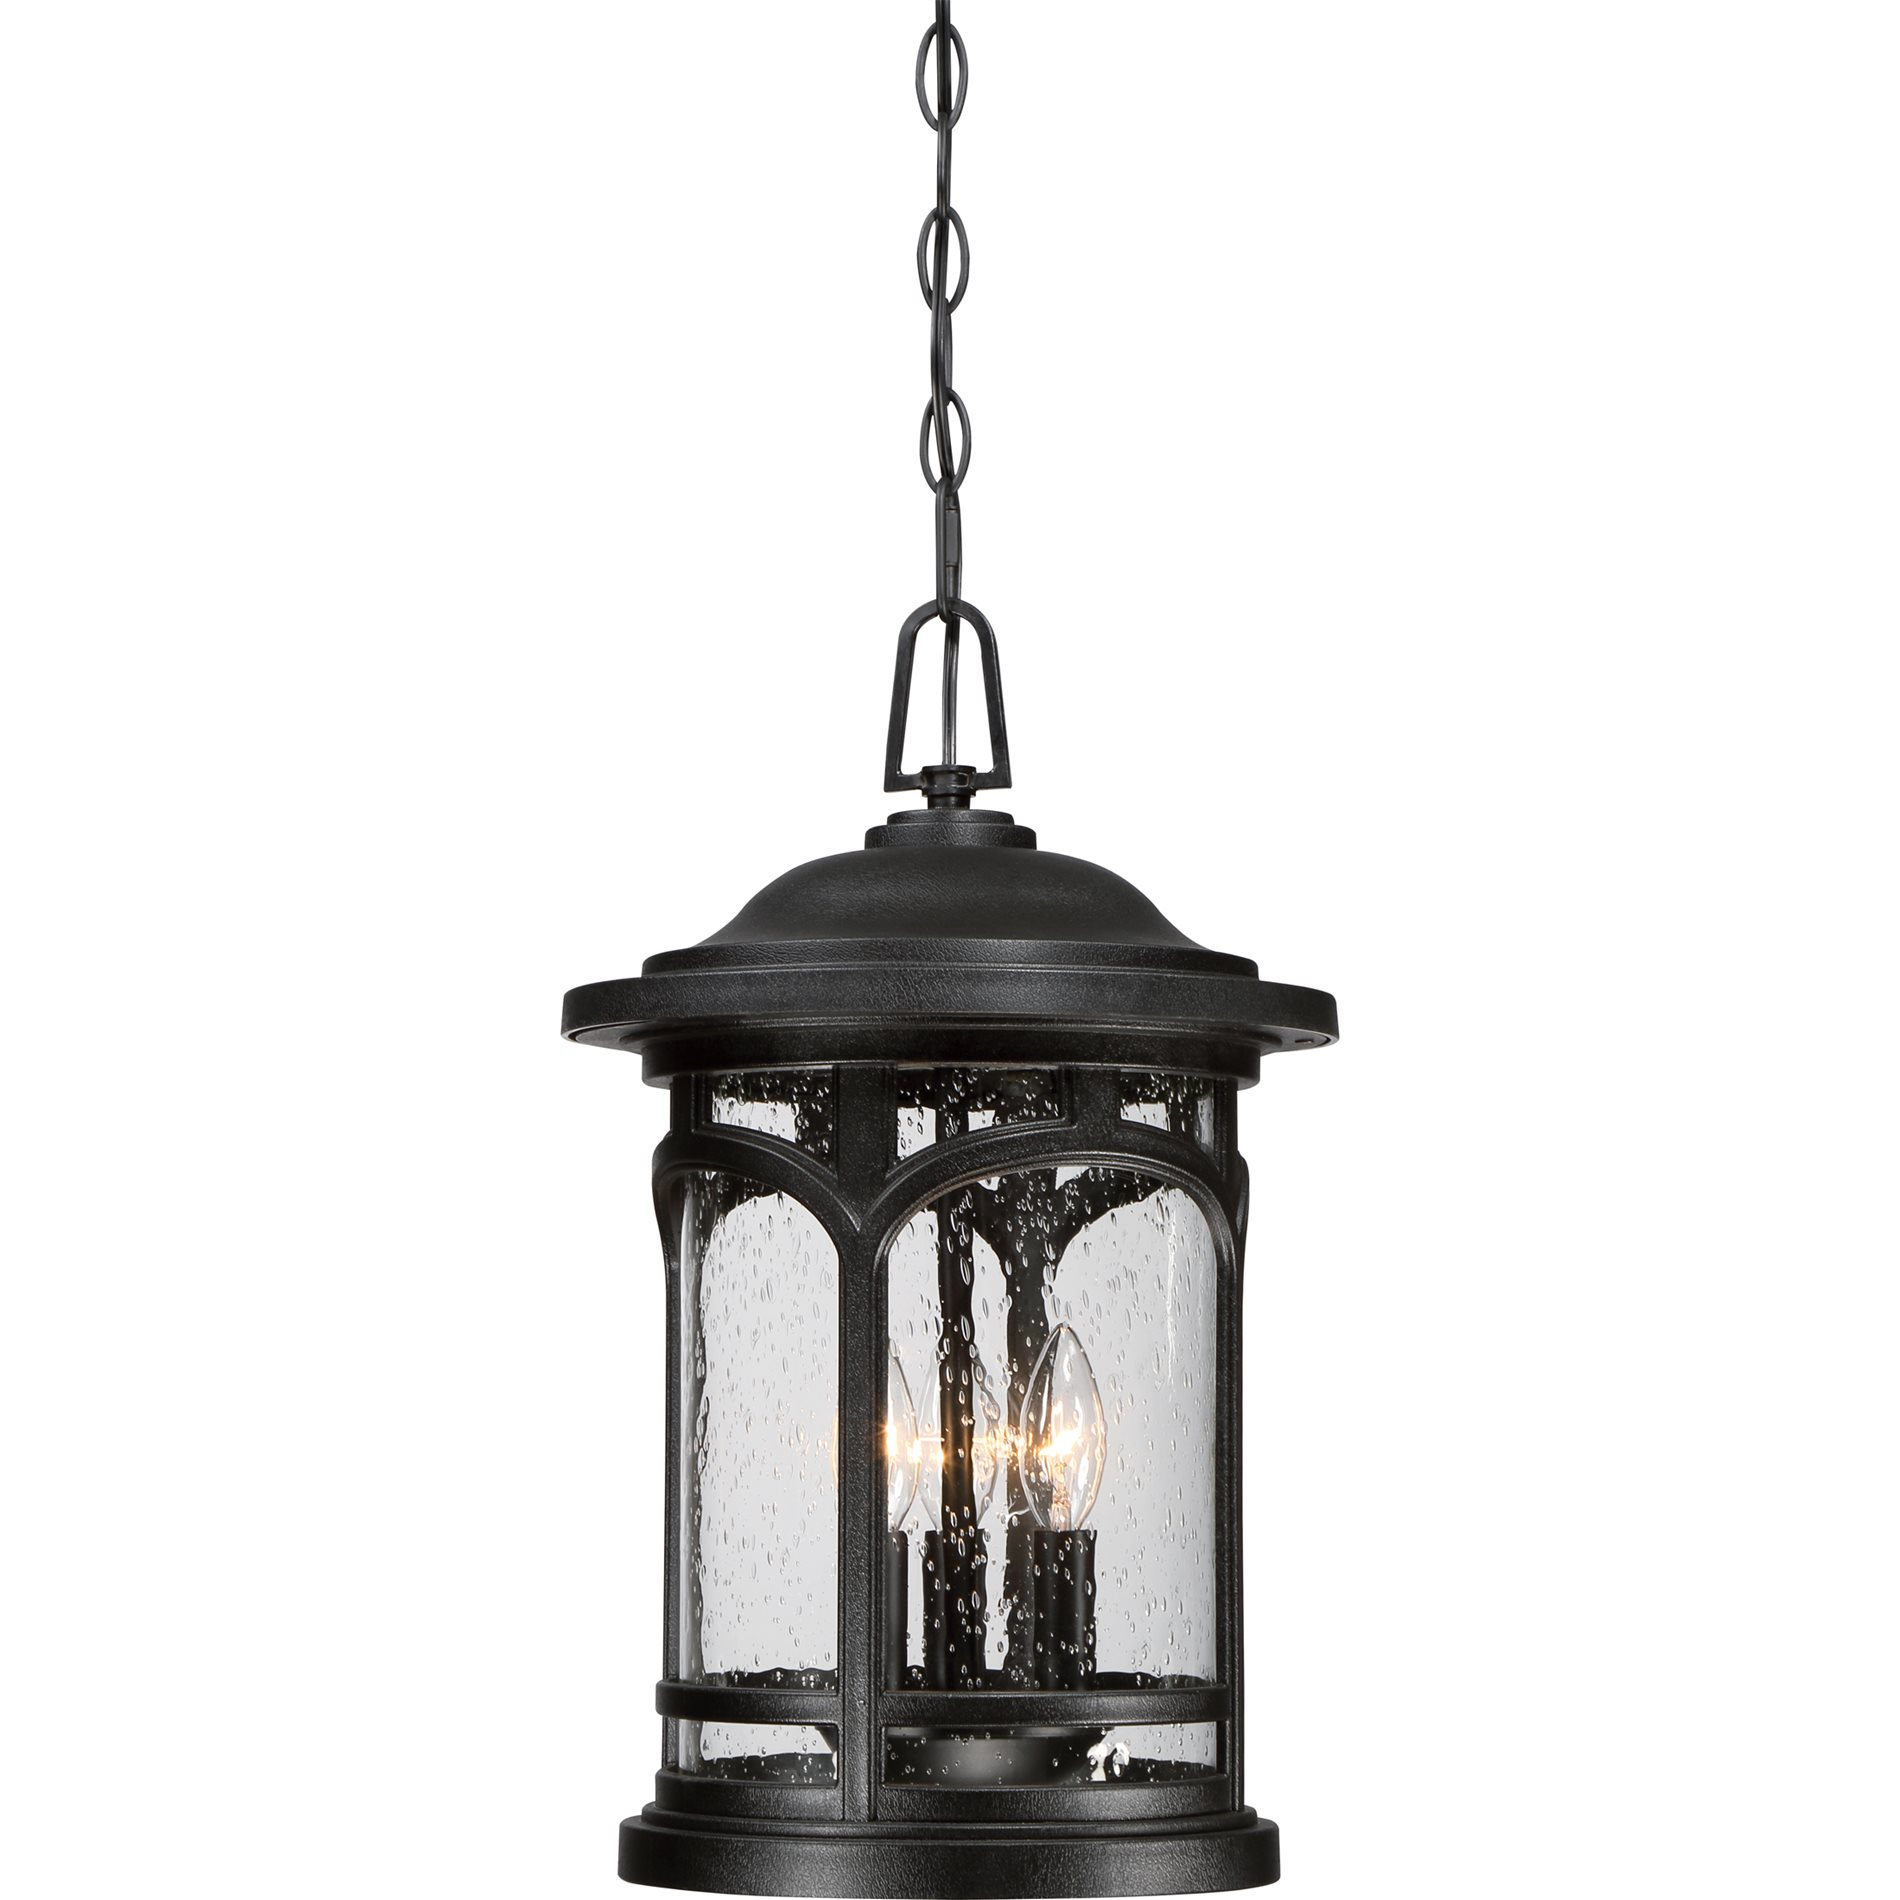 Quoizel MBH1911K Marblehead Transitional Outdoor Hanging